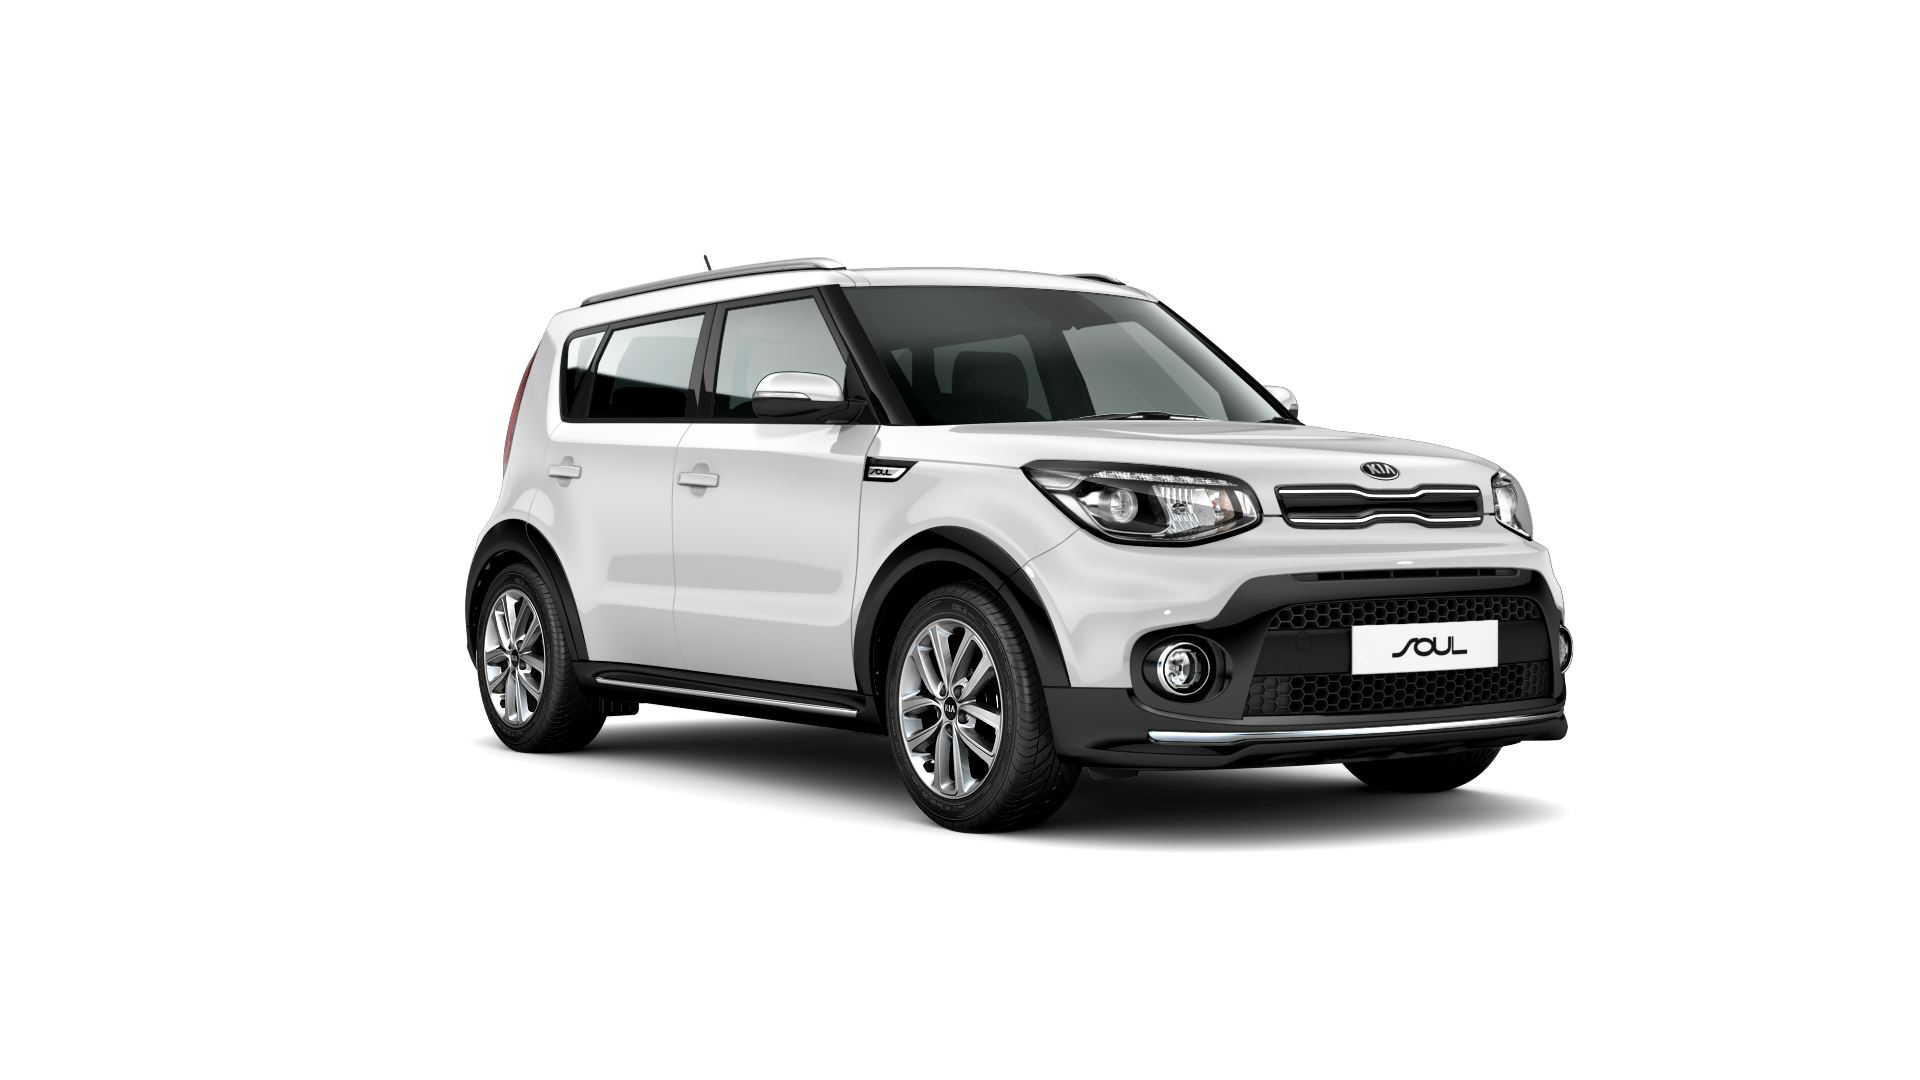 Kia soul clipart graphic free library Kia Soul PNG Transparent Kia Soul.PNG Images. | PlusPNG graphic free library